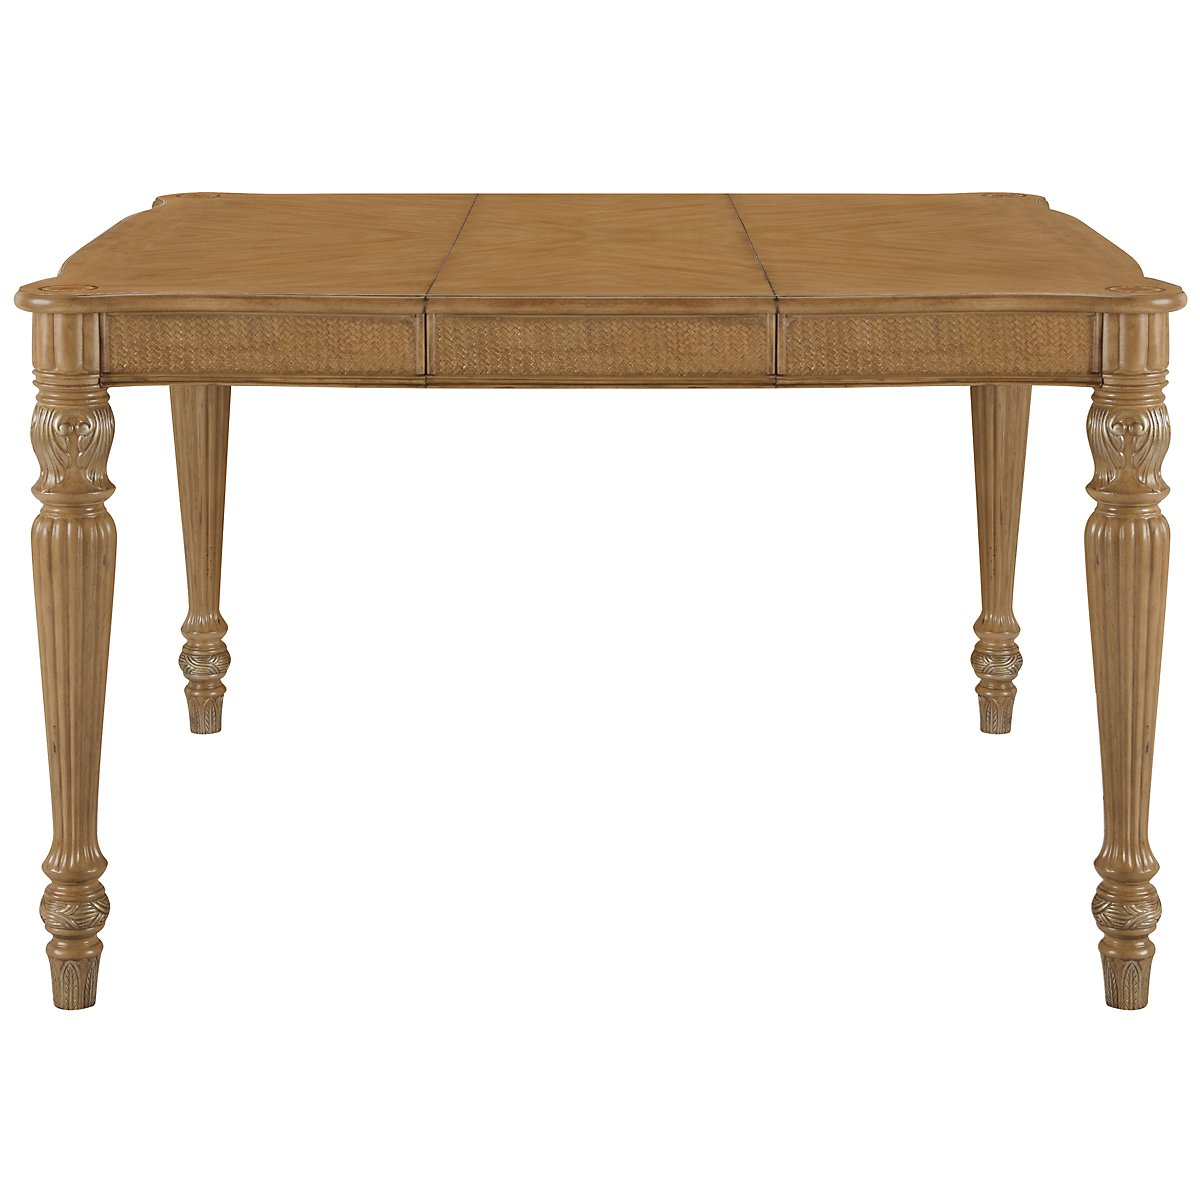 Tradewinds Light Tone Square High Dining Table